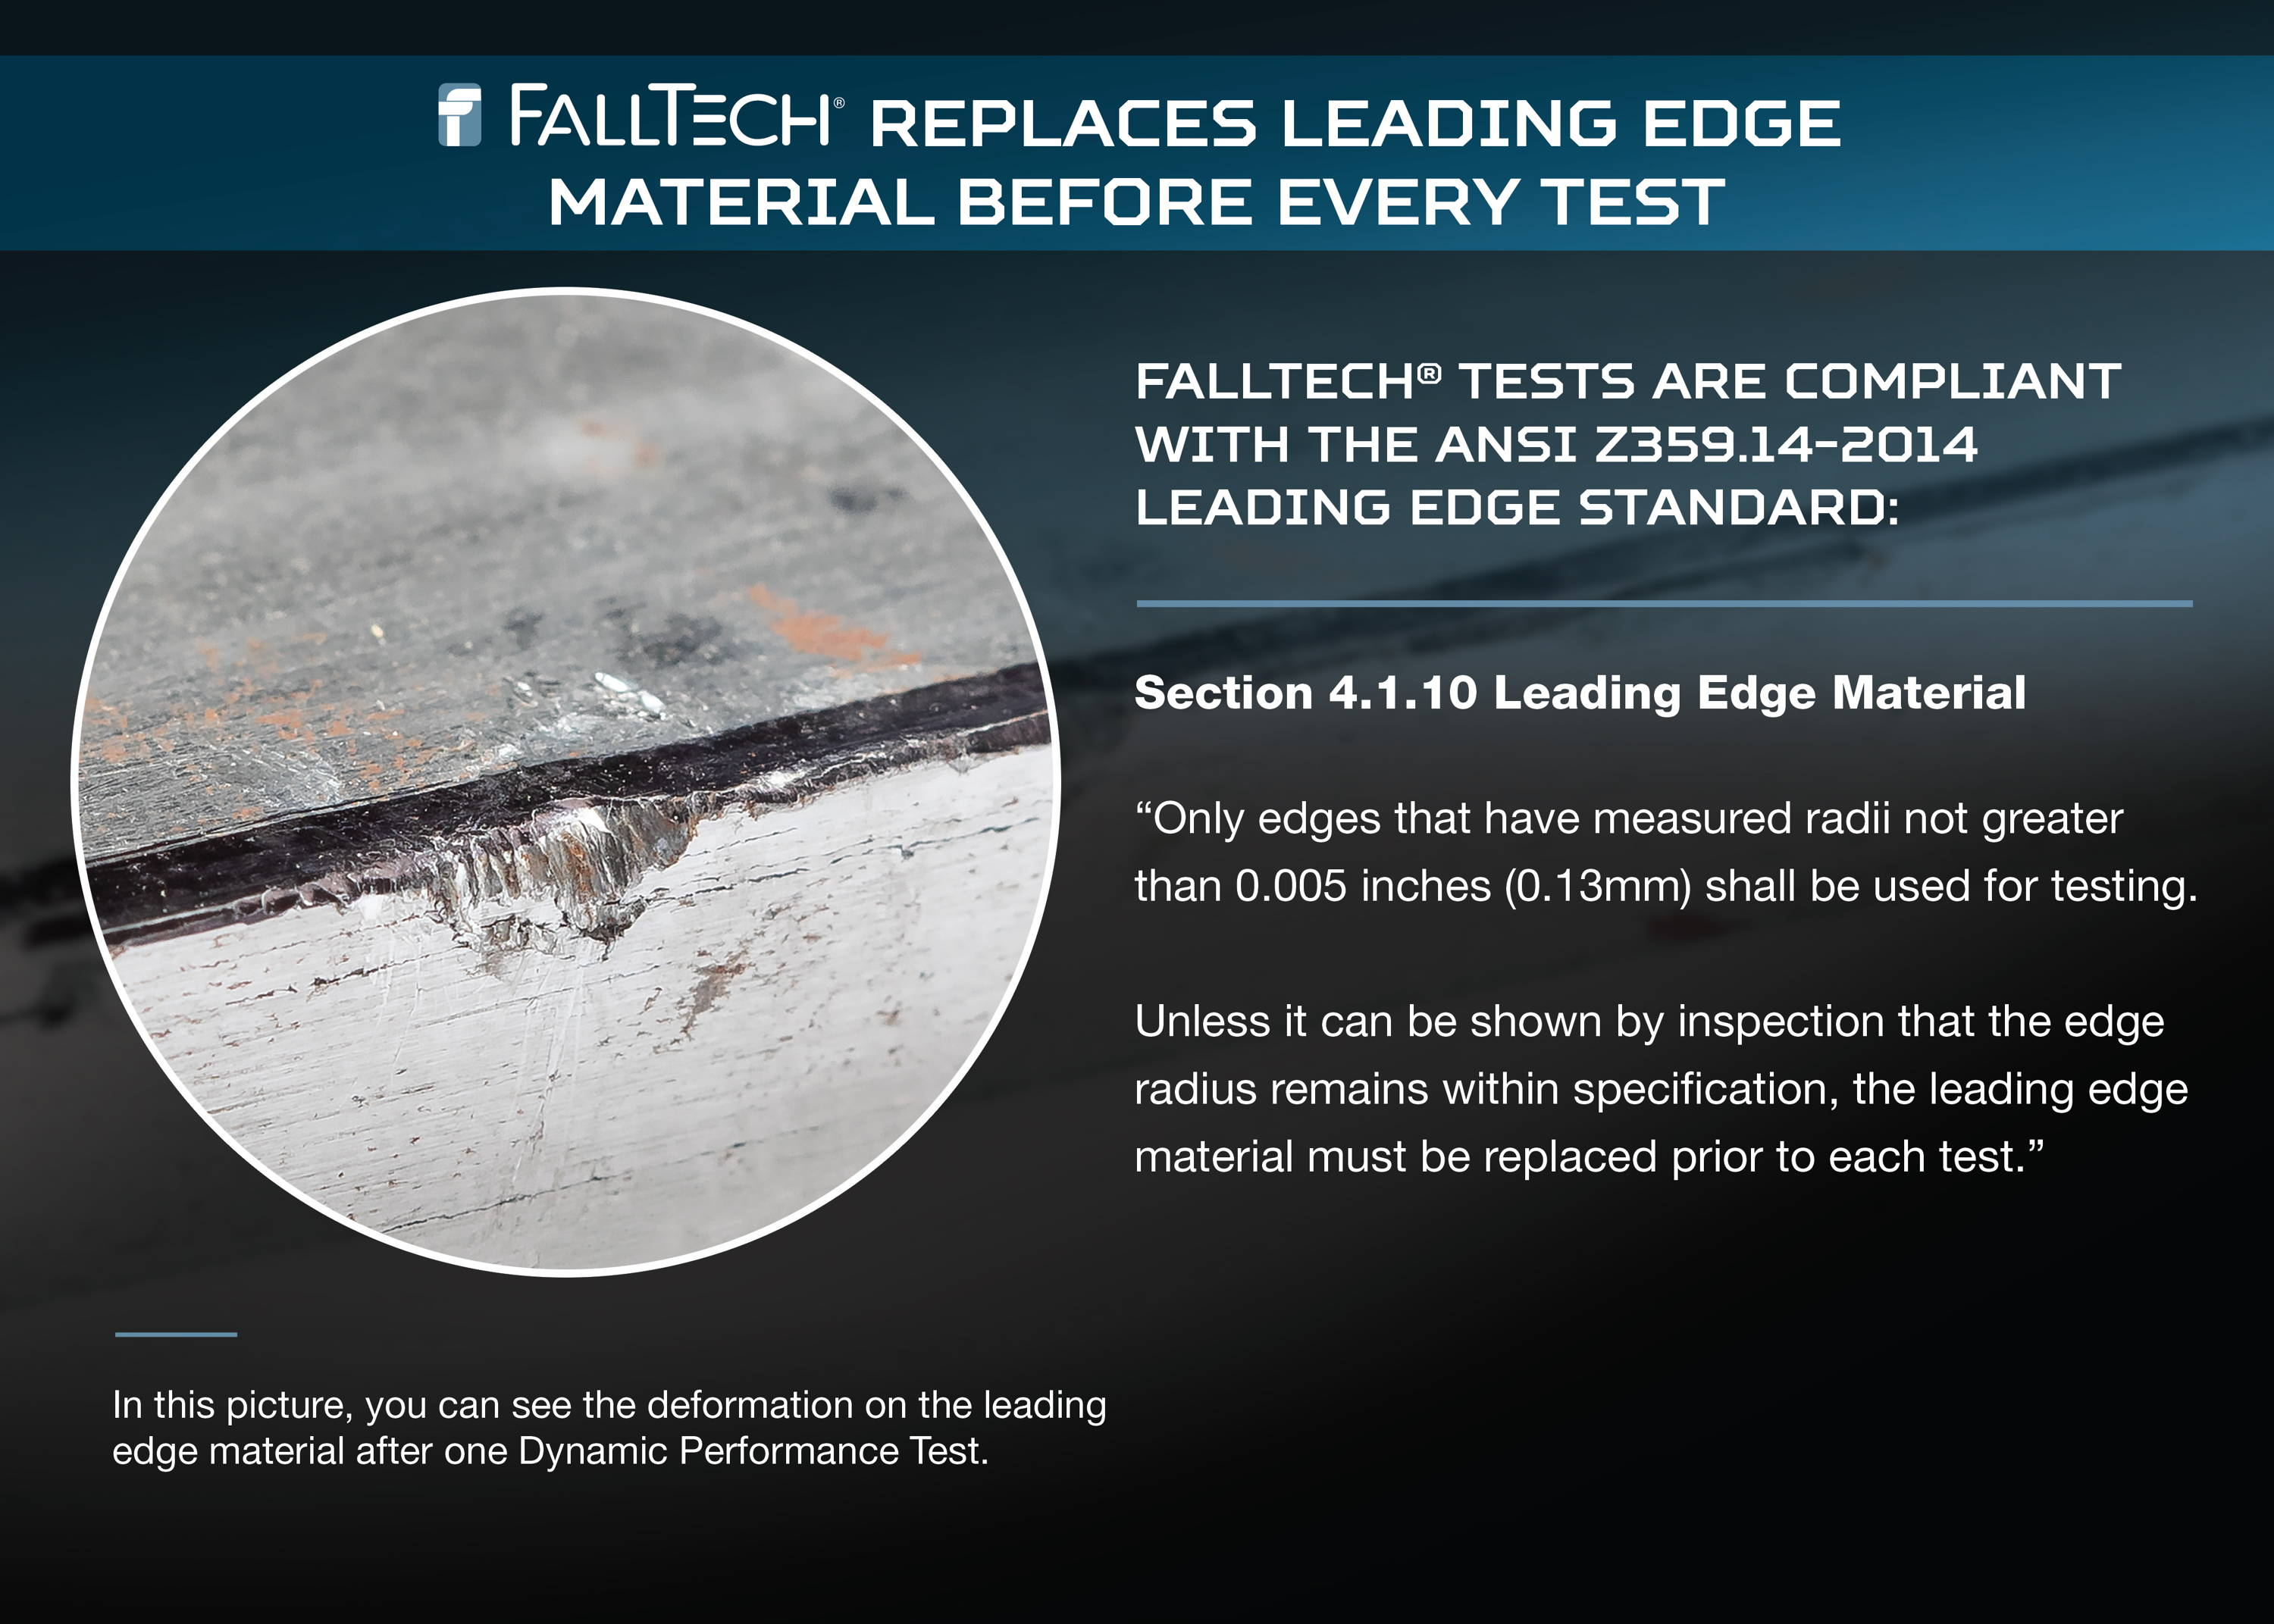 FallTech replaces leading edge material before every test